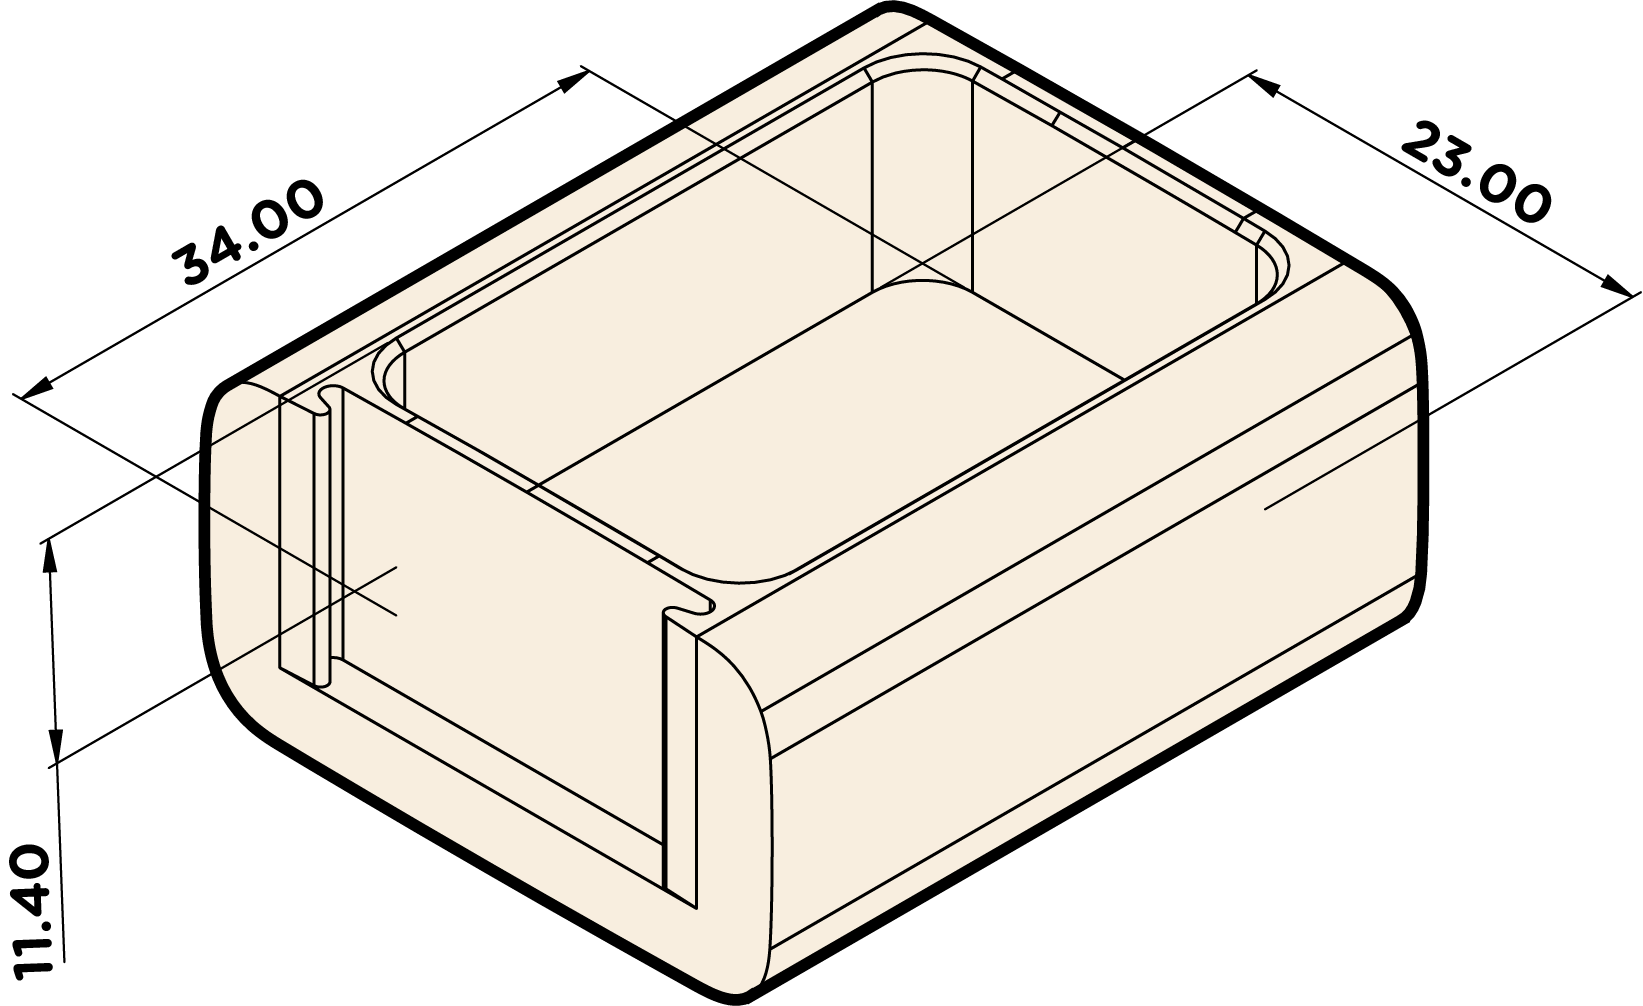 Tray - Dimensions in Millimeters